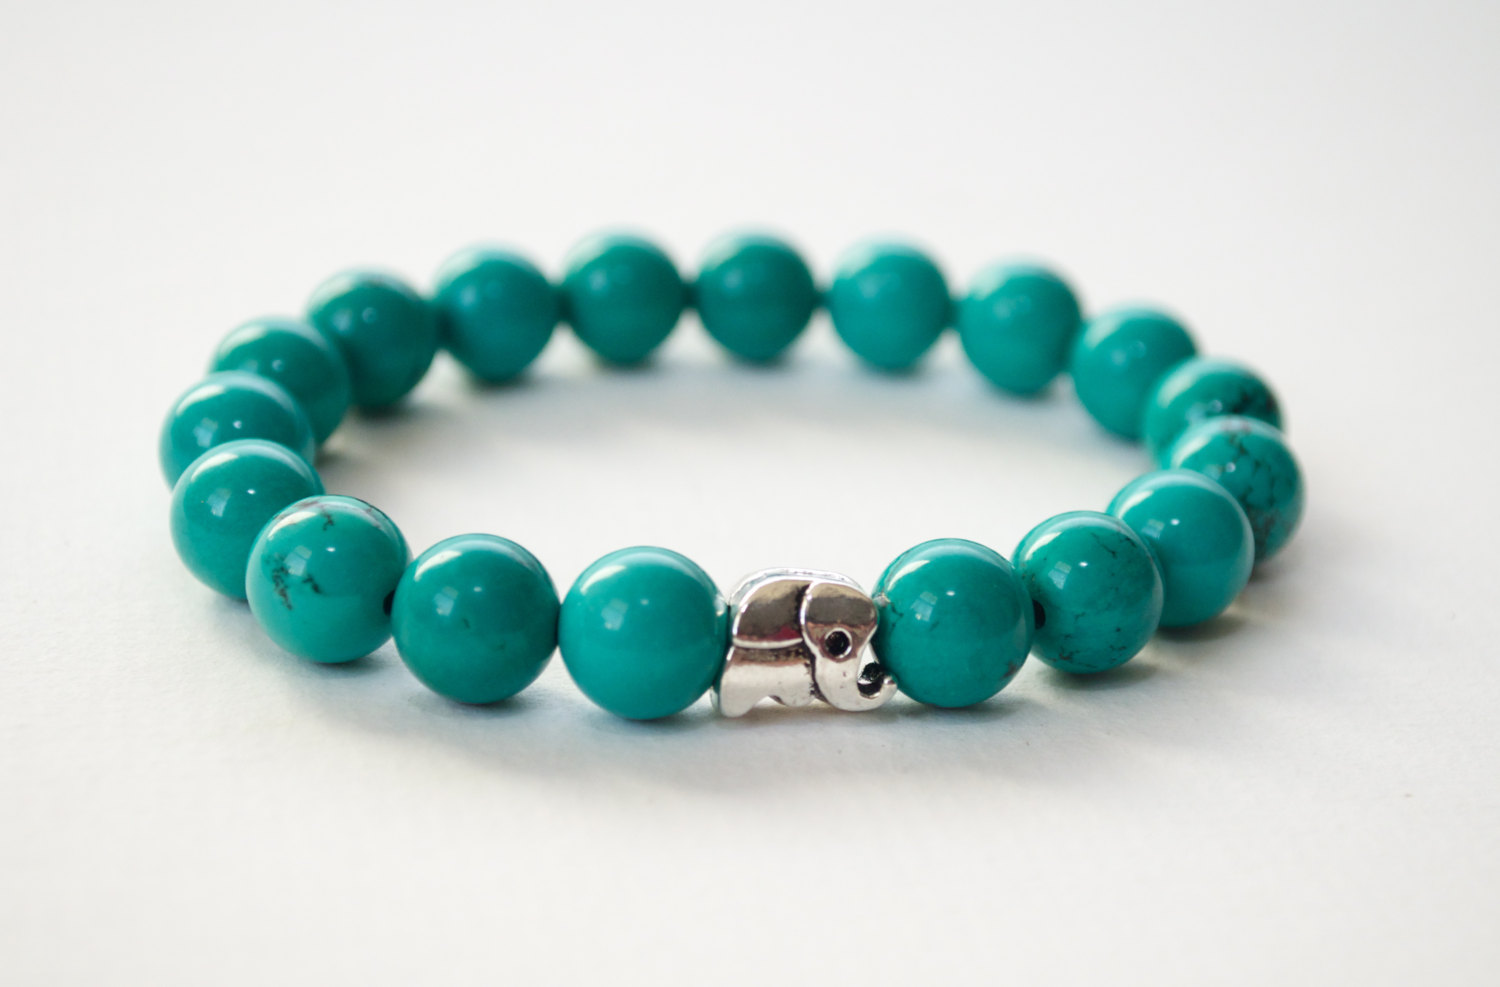 Adorn Your Hands With Turquoise Bracelets Styleskier